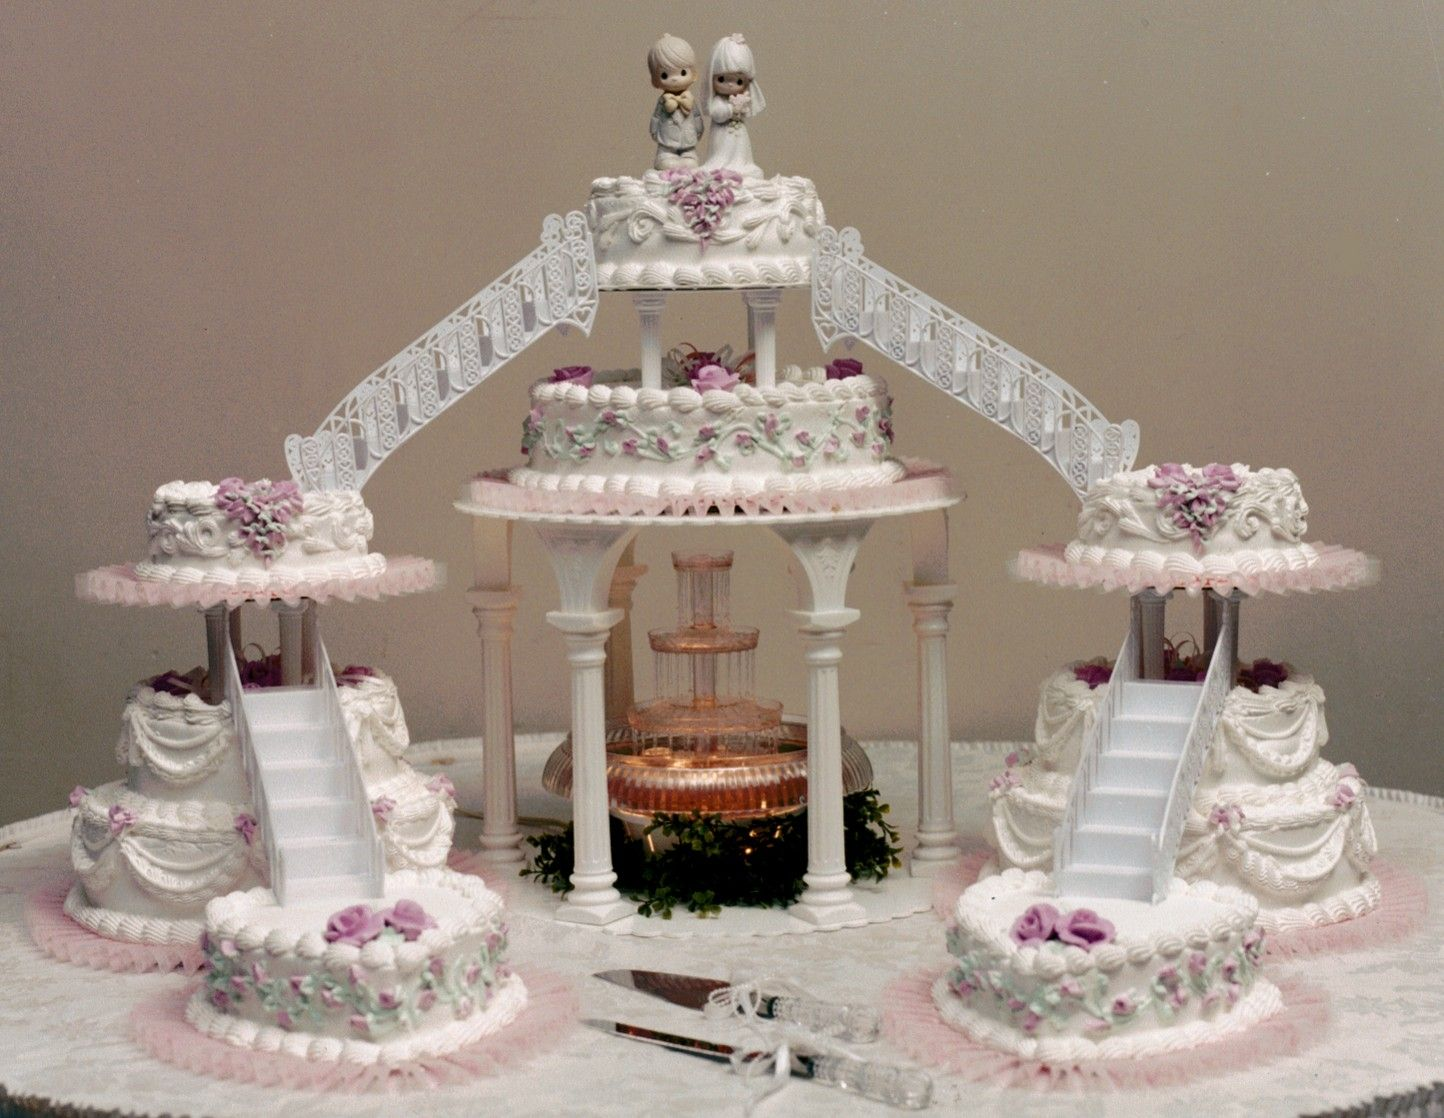 Mc Arthurs Bakery Wedding Cake With Fountains And Bridges Prince